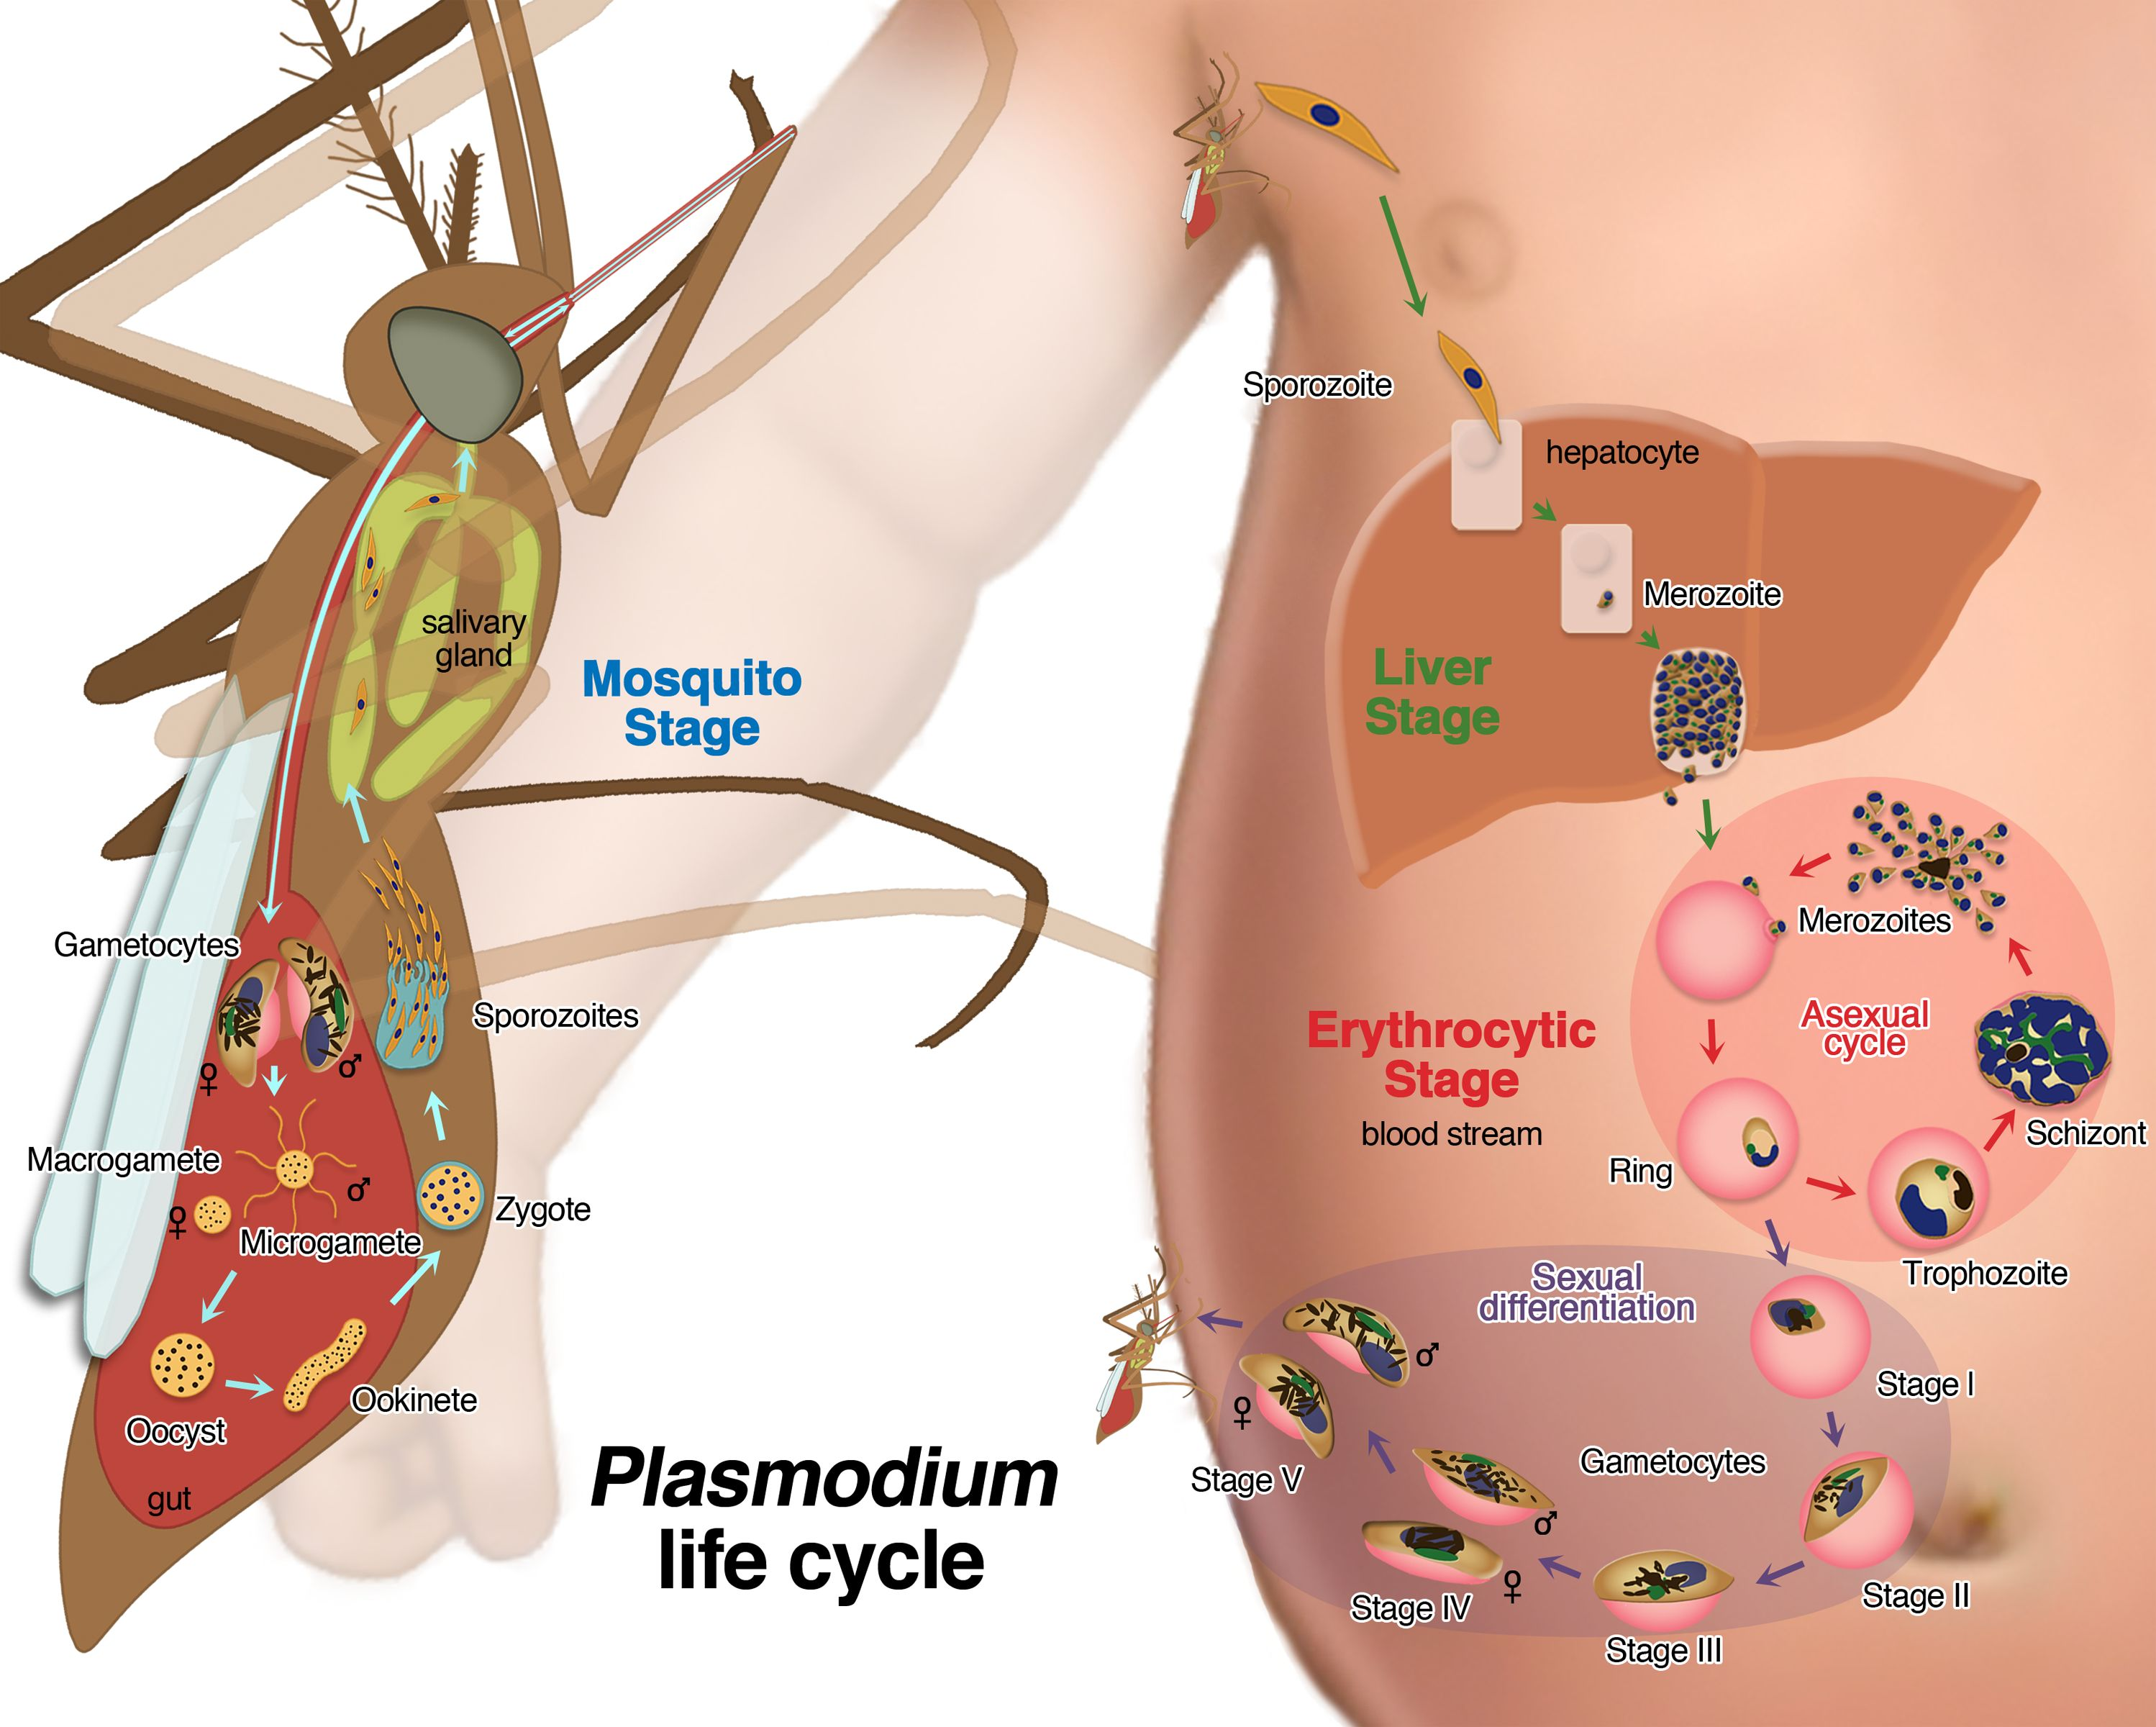 external image Falciparum-life-cycle-final.jpg